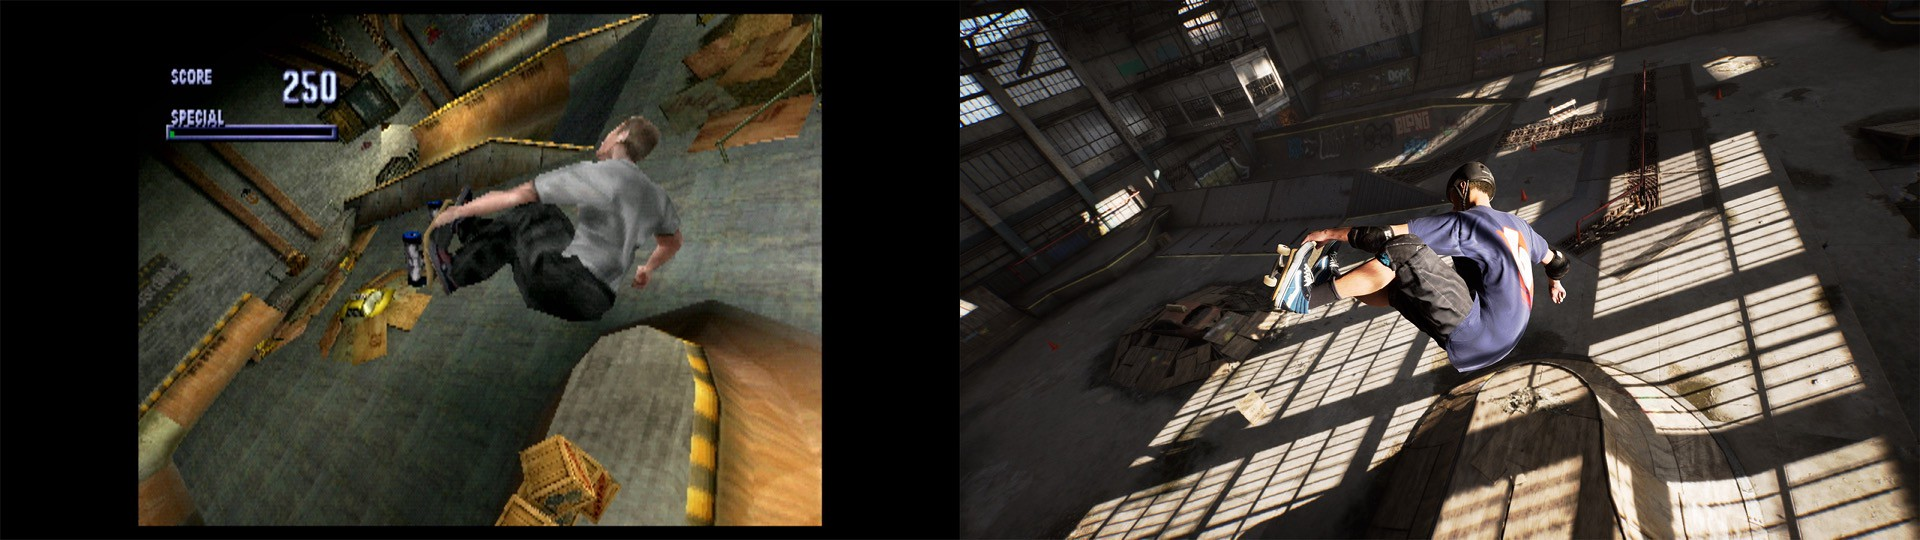 Tony Hawk's Pro Skater 1 and 2 Original vs Remastered